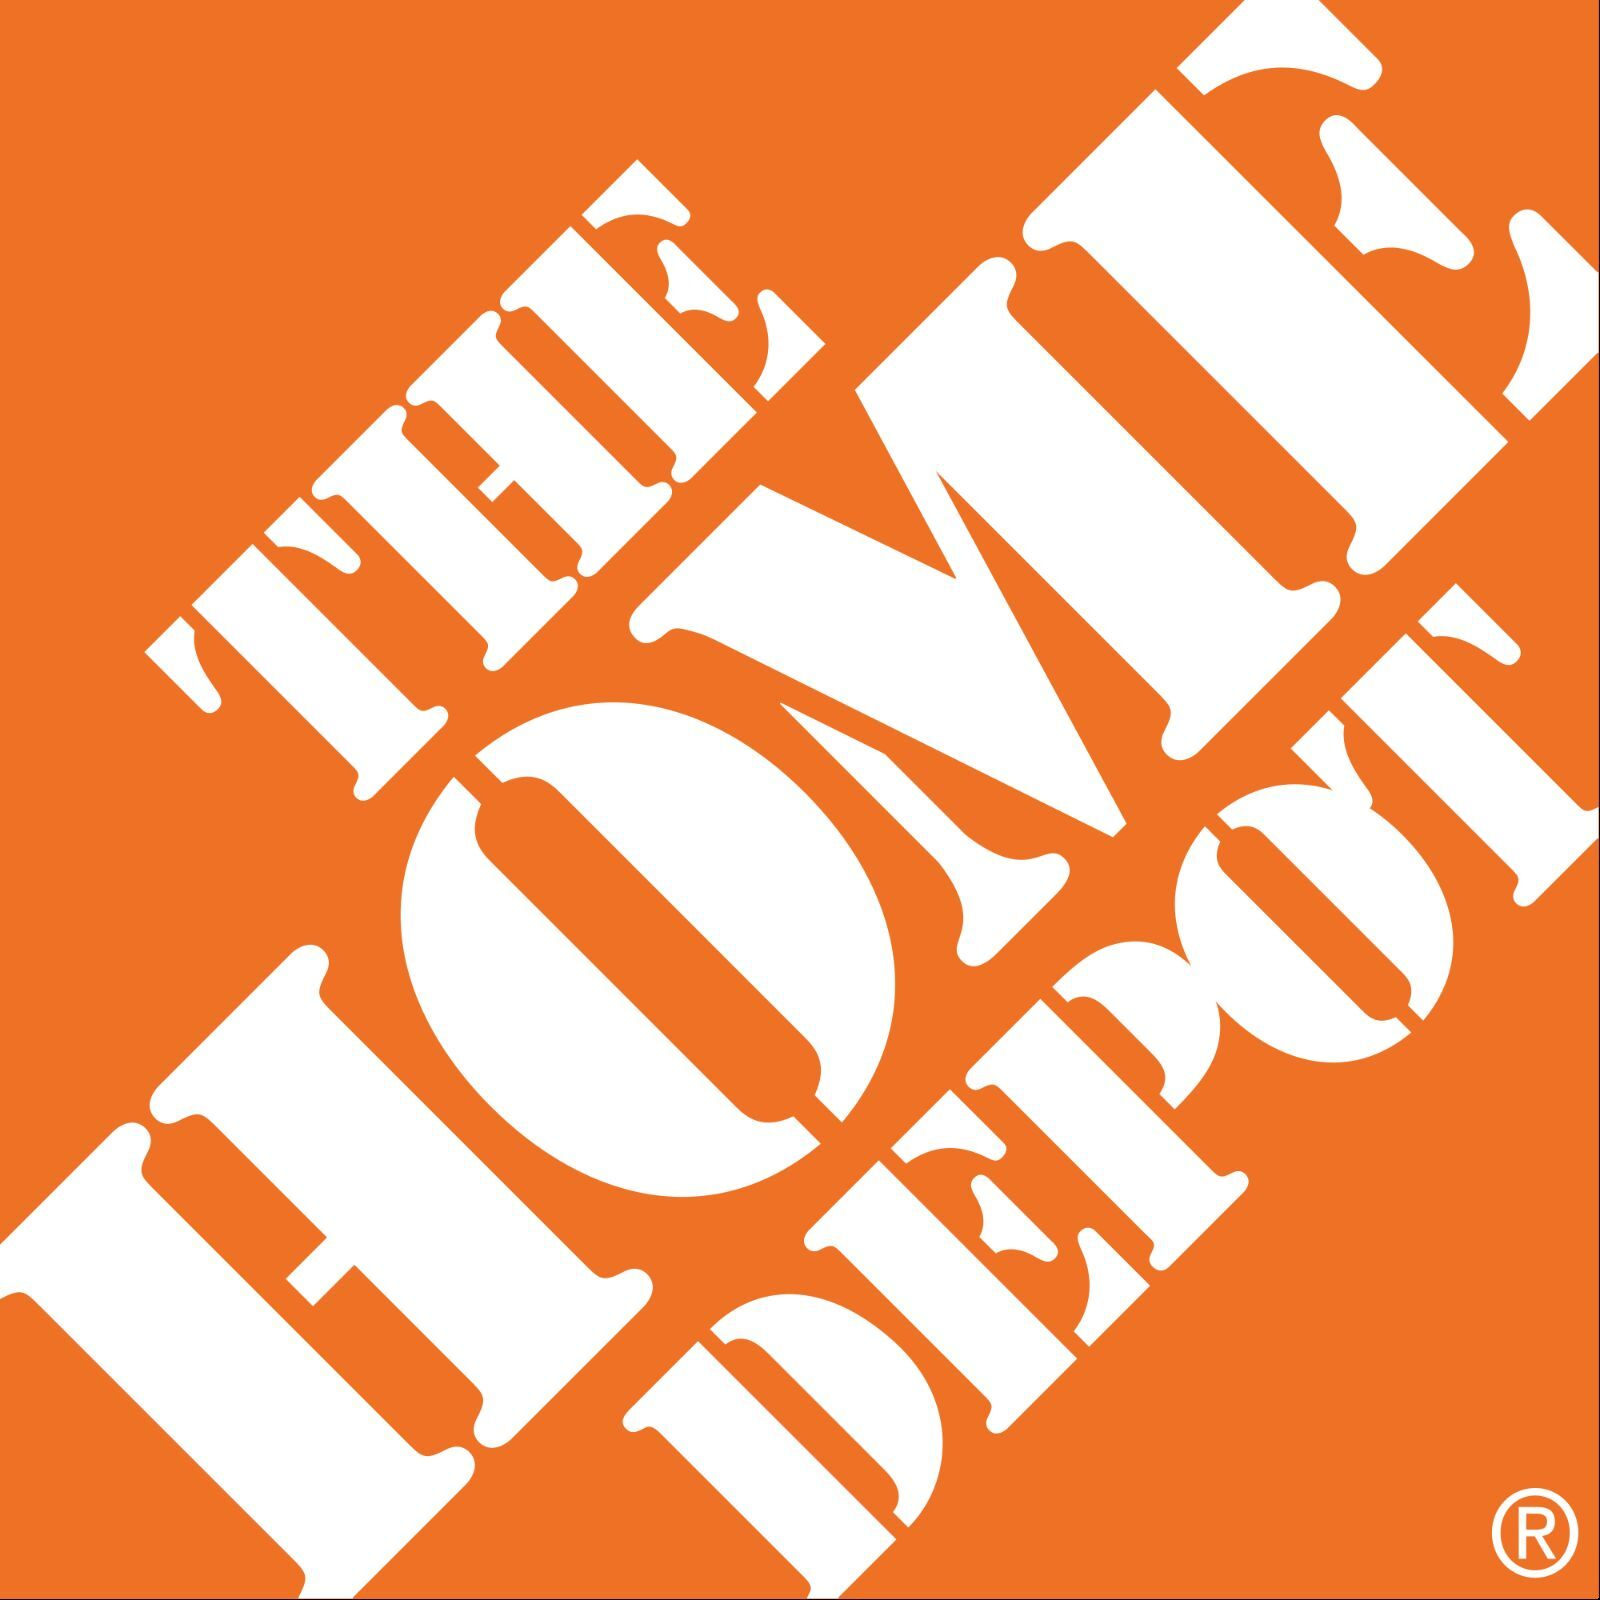 Home Decoration - Home Depot racing logo Vinyl Decal / Sticker ** 5 Sizes **